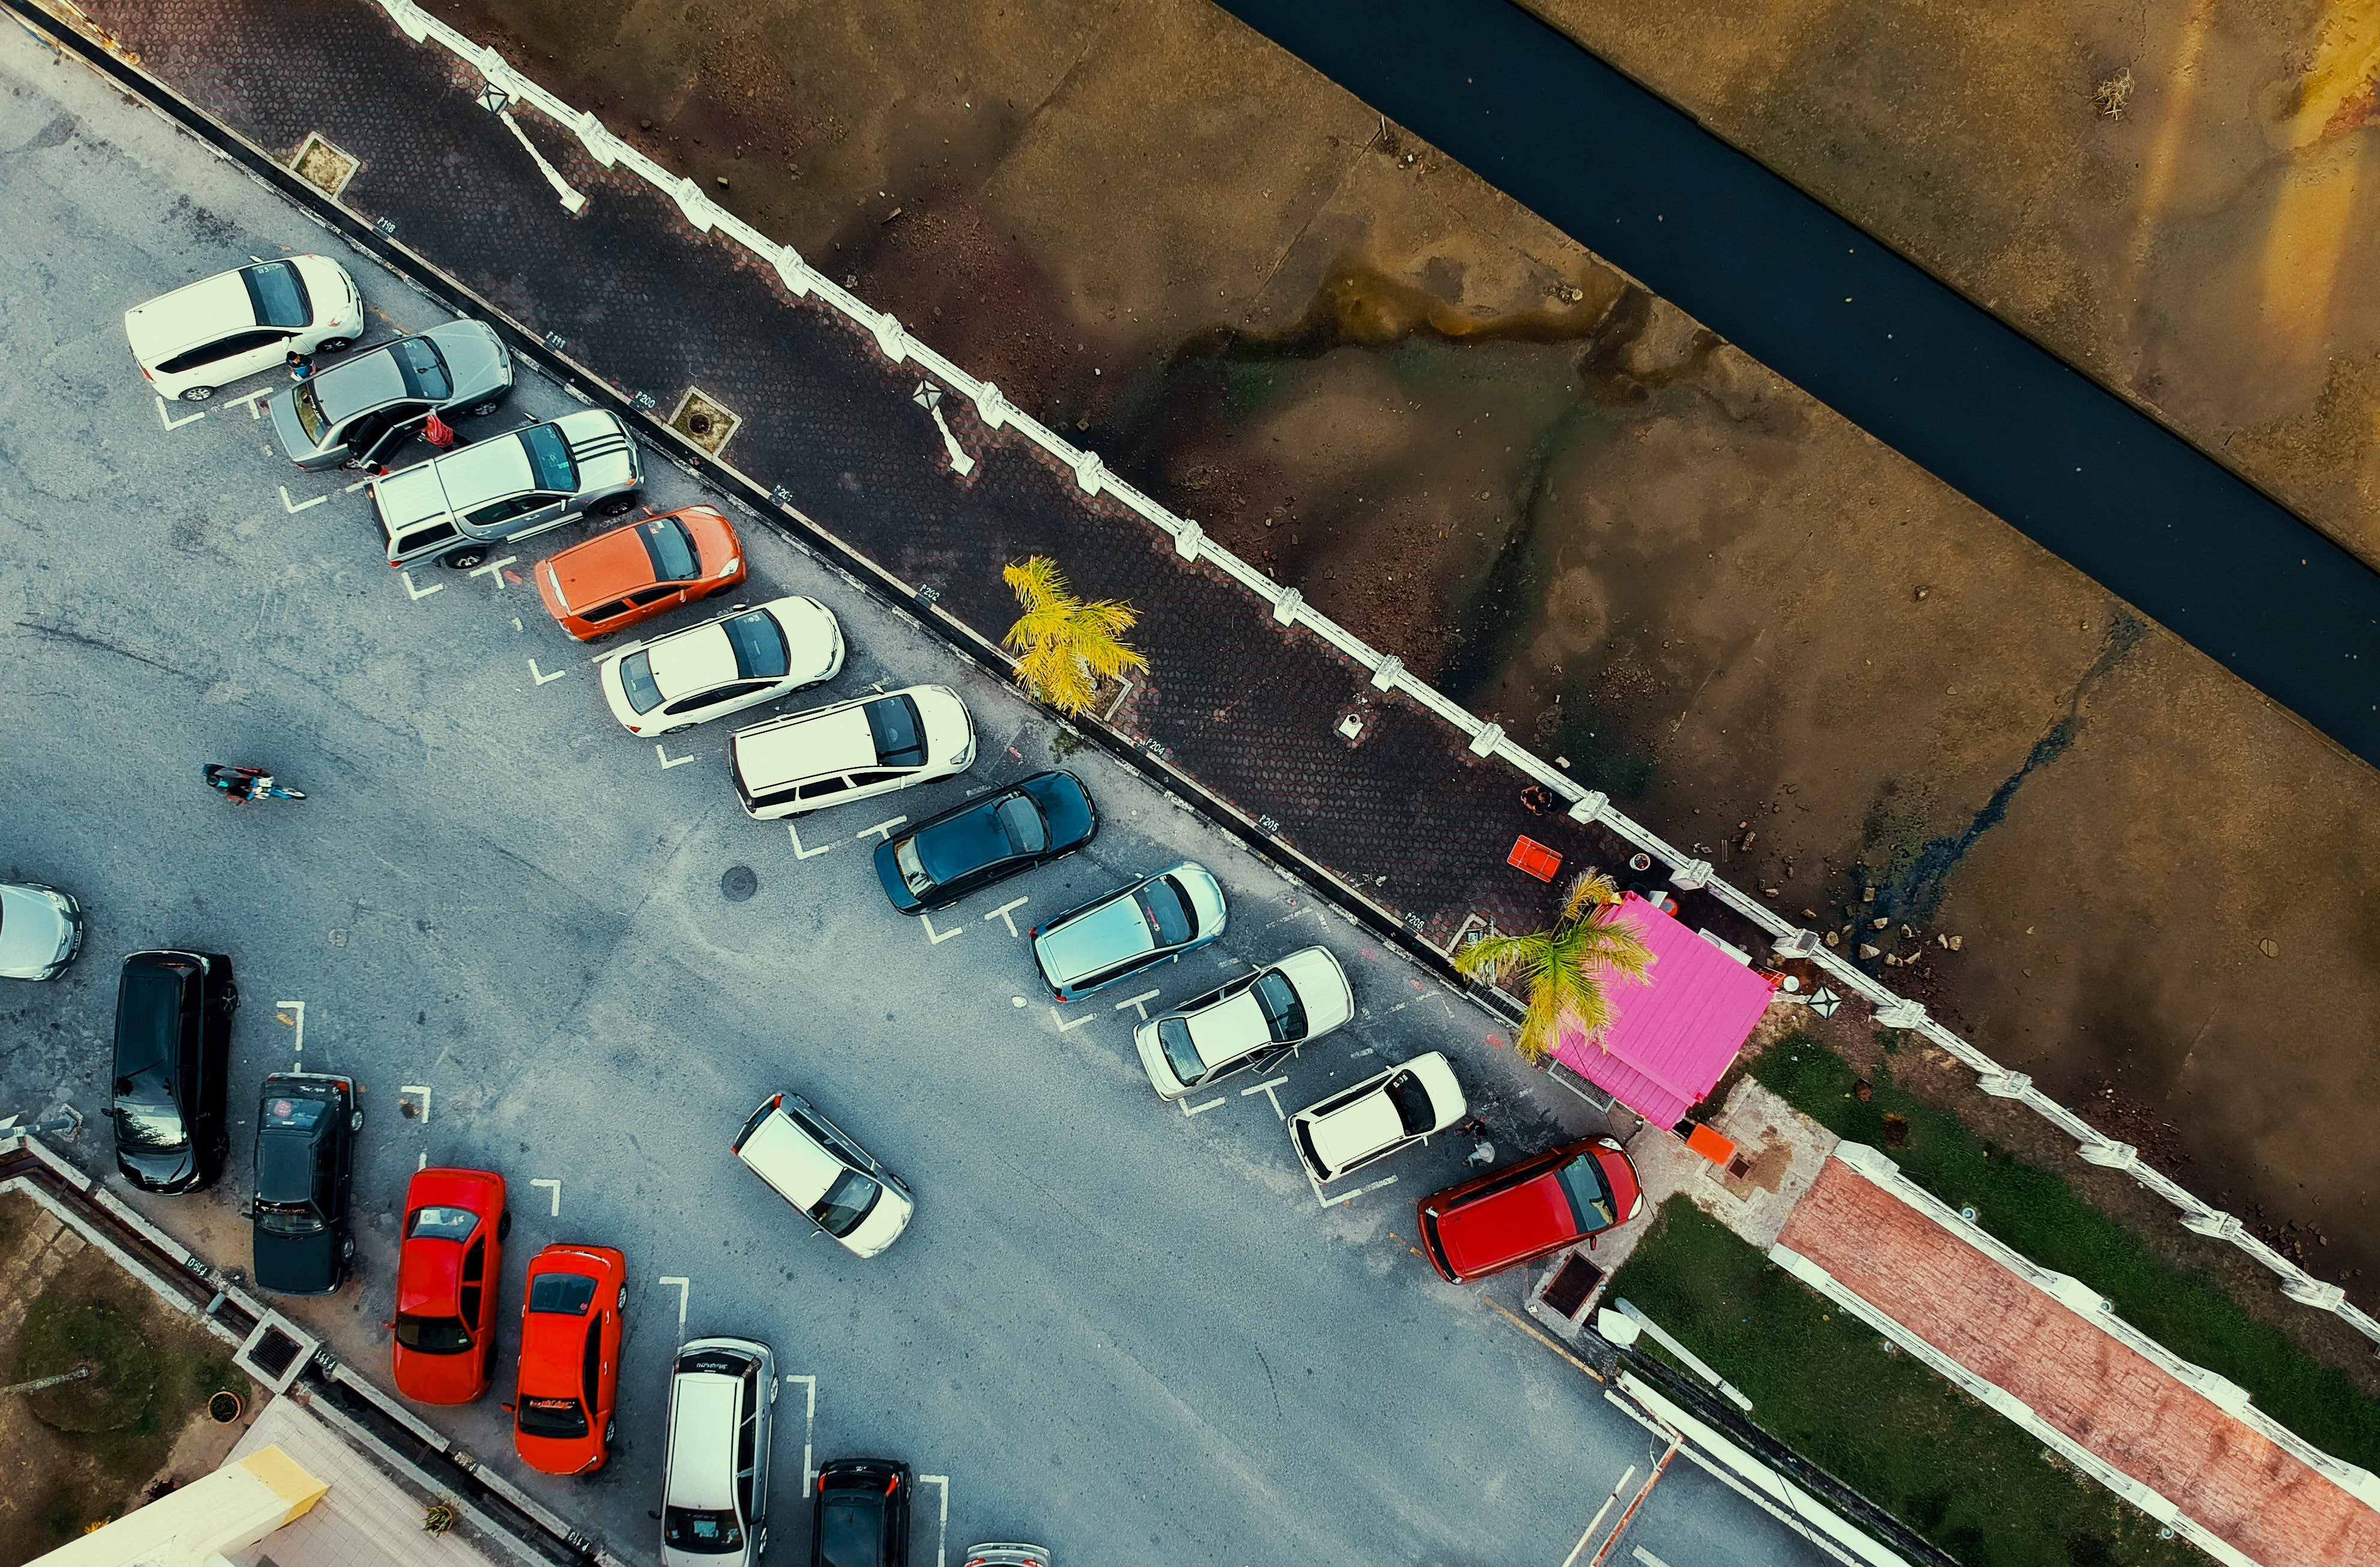 Pictured - An aerial view of parked vehicles in a parking lot | Source: Pexles